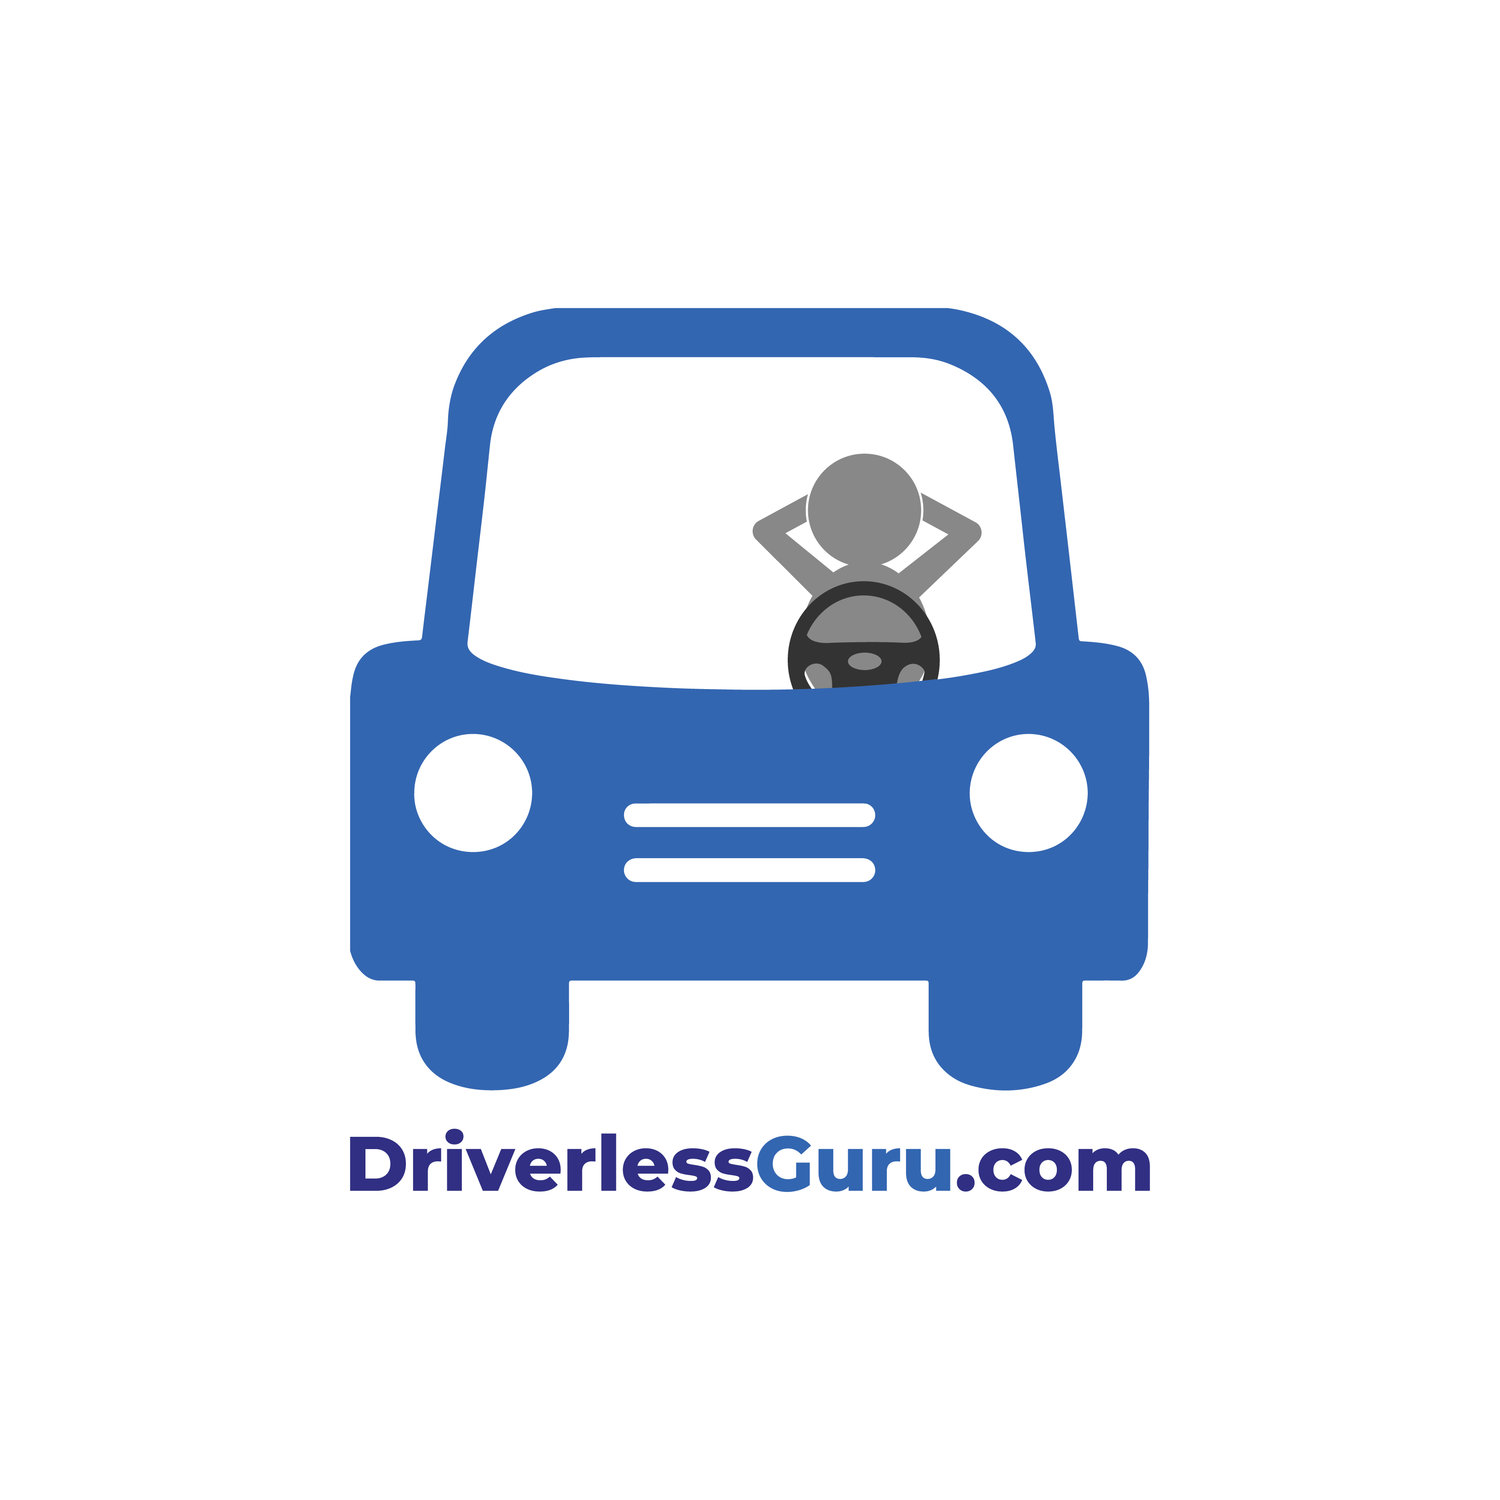 Driverlessguru Com Your Guide To The World Of Self Driving Cars